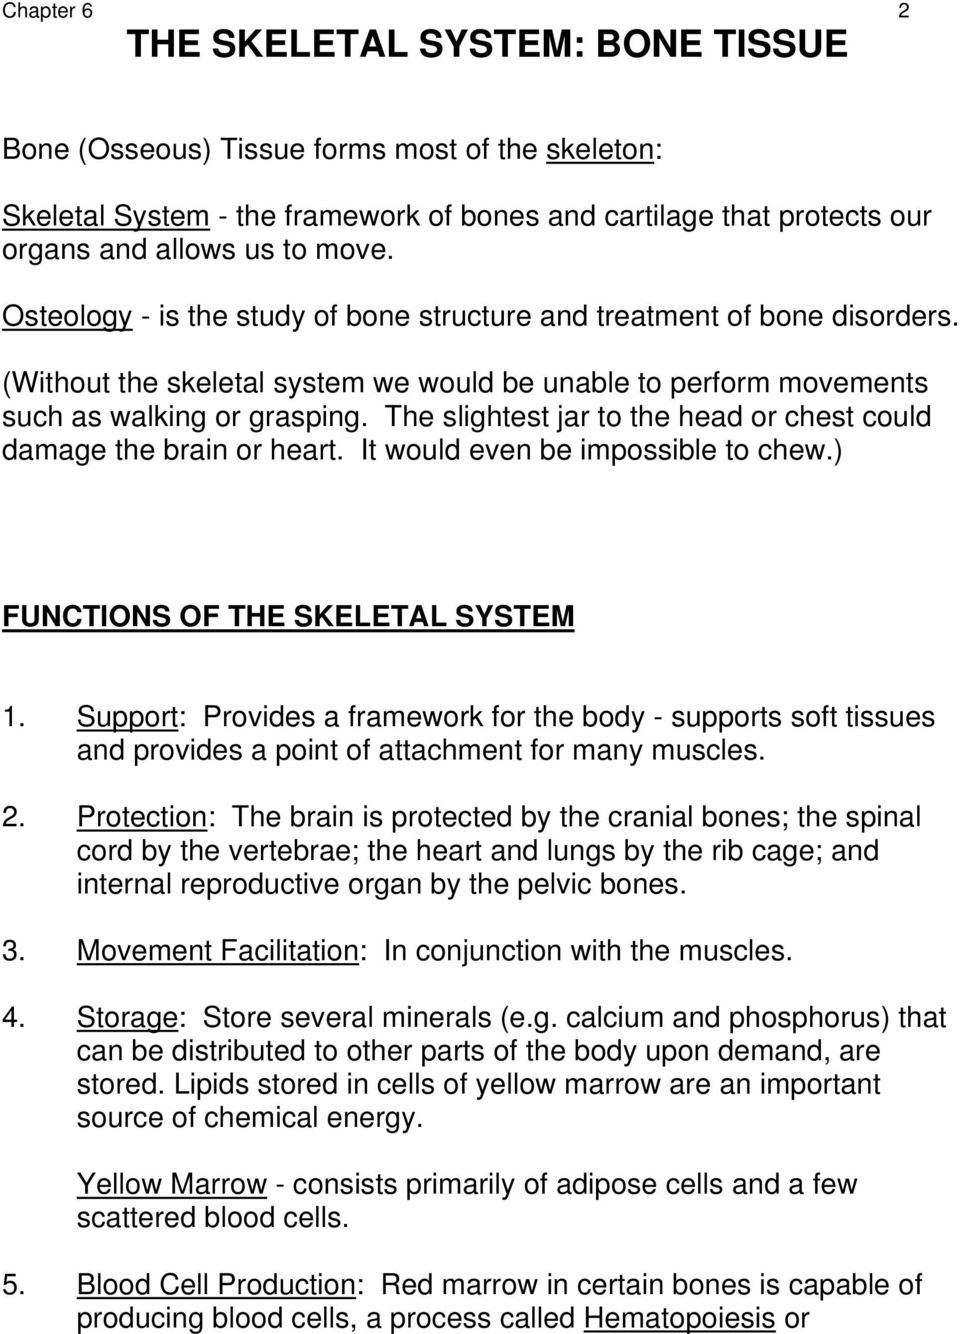 The Skeletal System Bone Tissue Chapter 6 Anatomy And Physiology